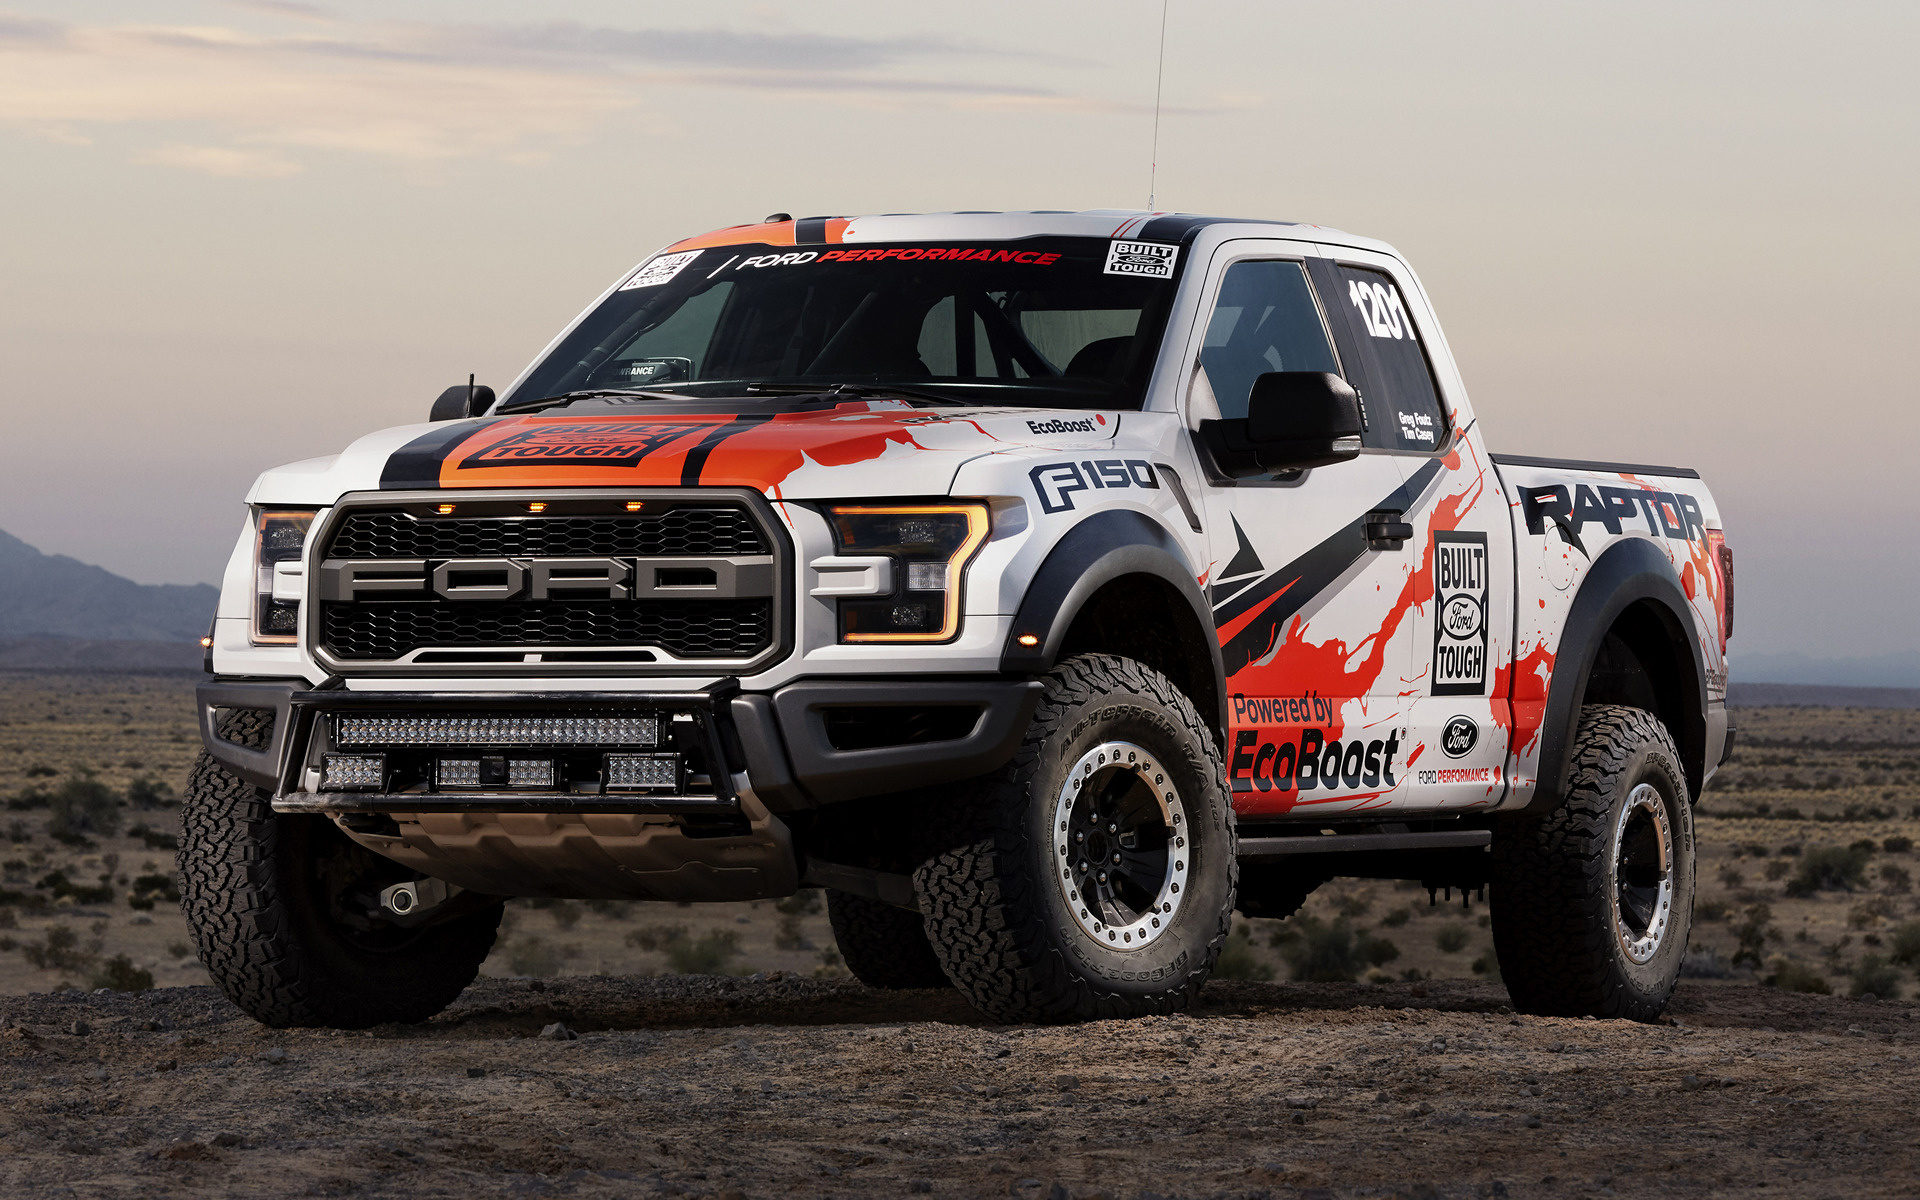 Ford F150 King Ranch >> 2017 Ford F-150 Raptor Race Truck - Wallpapers and HD ...